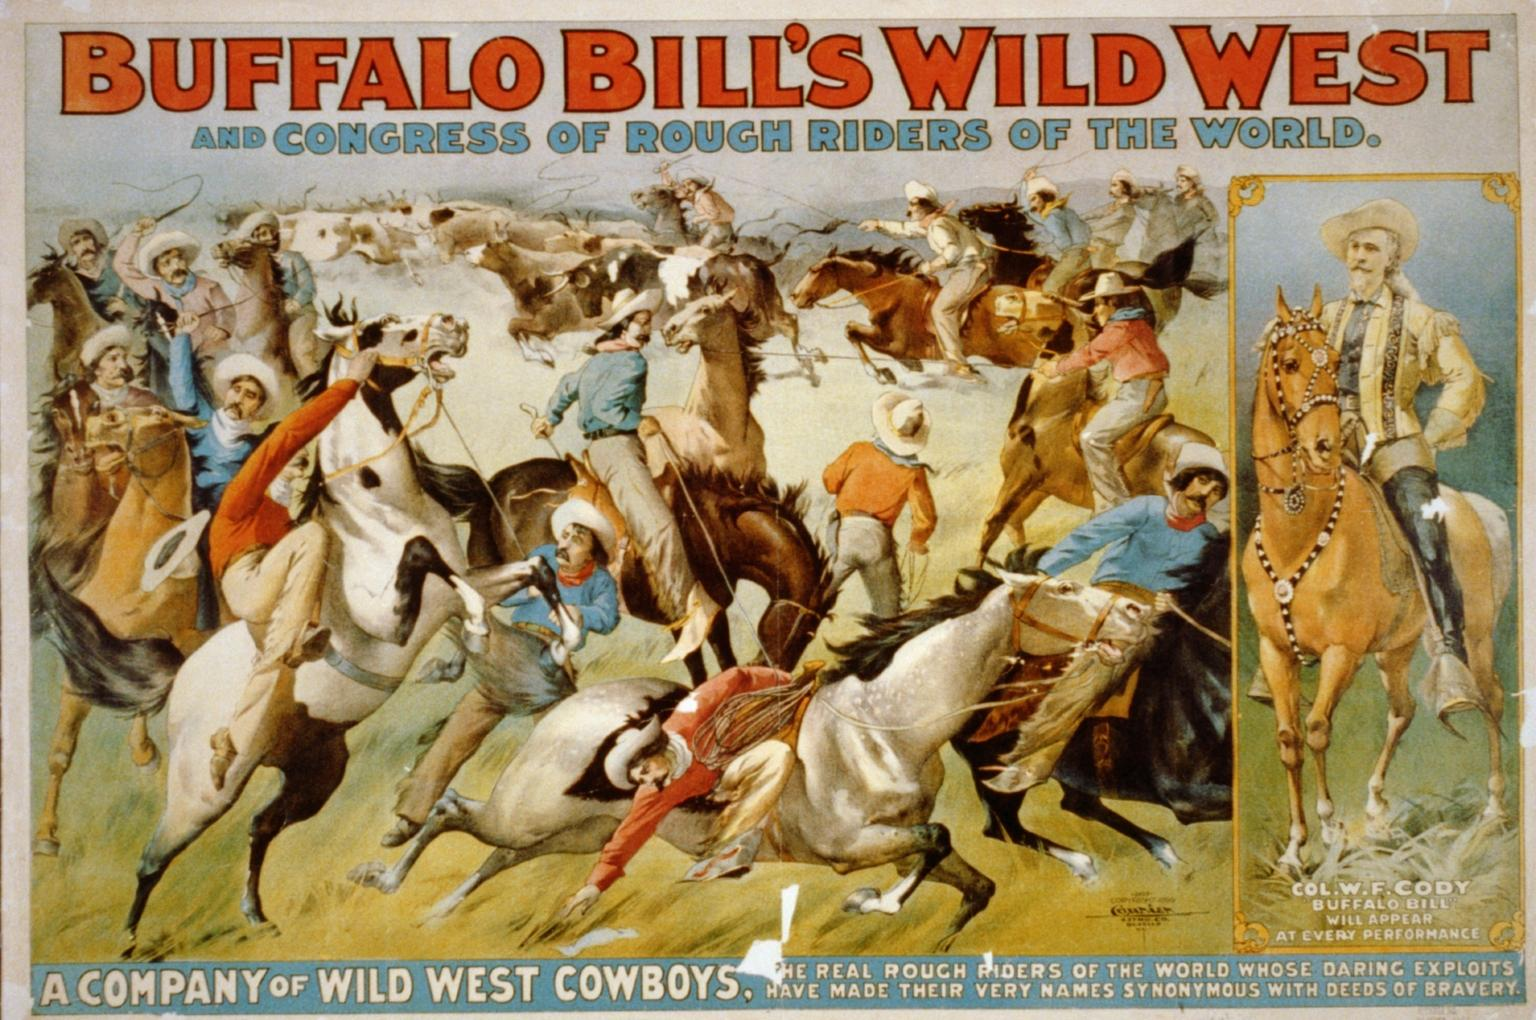 Researcher Profiling: The Wild West Many